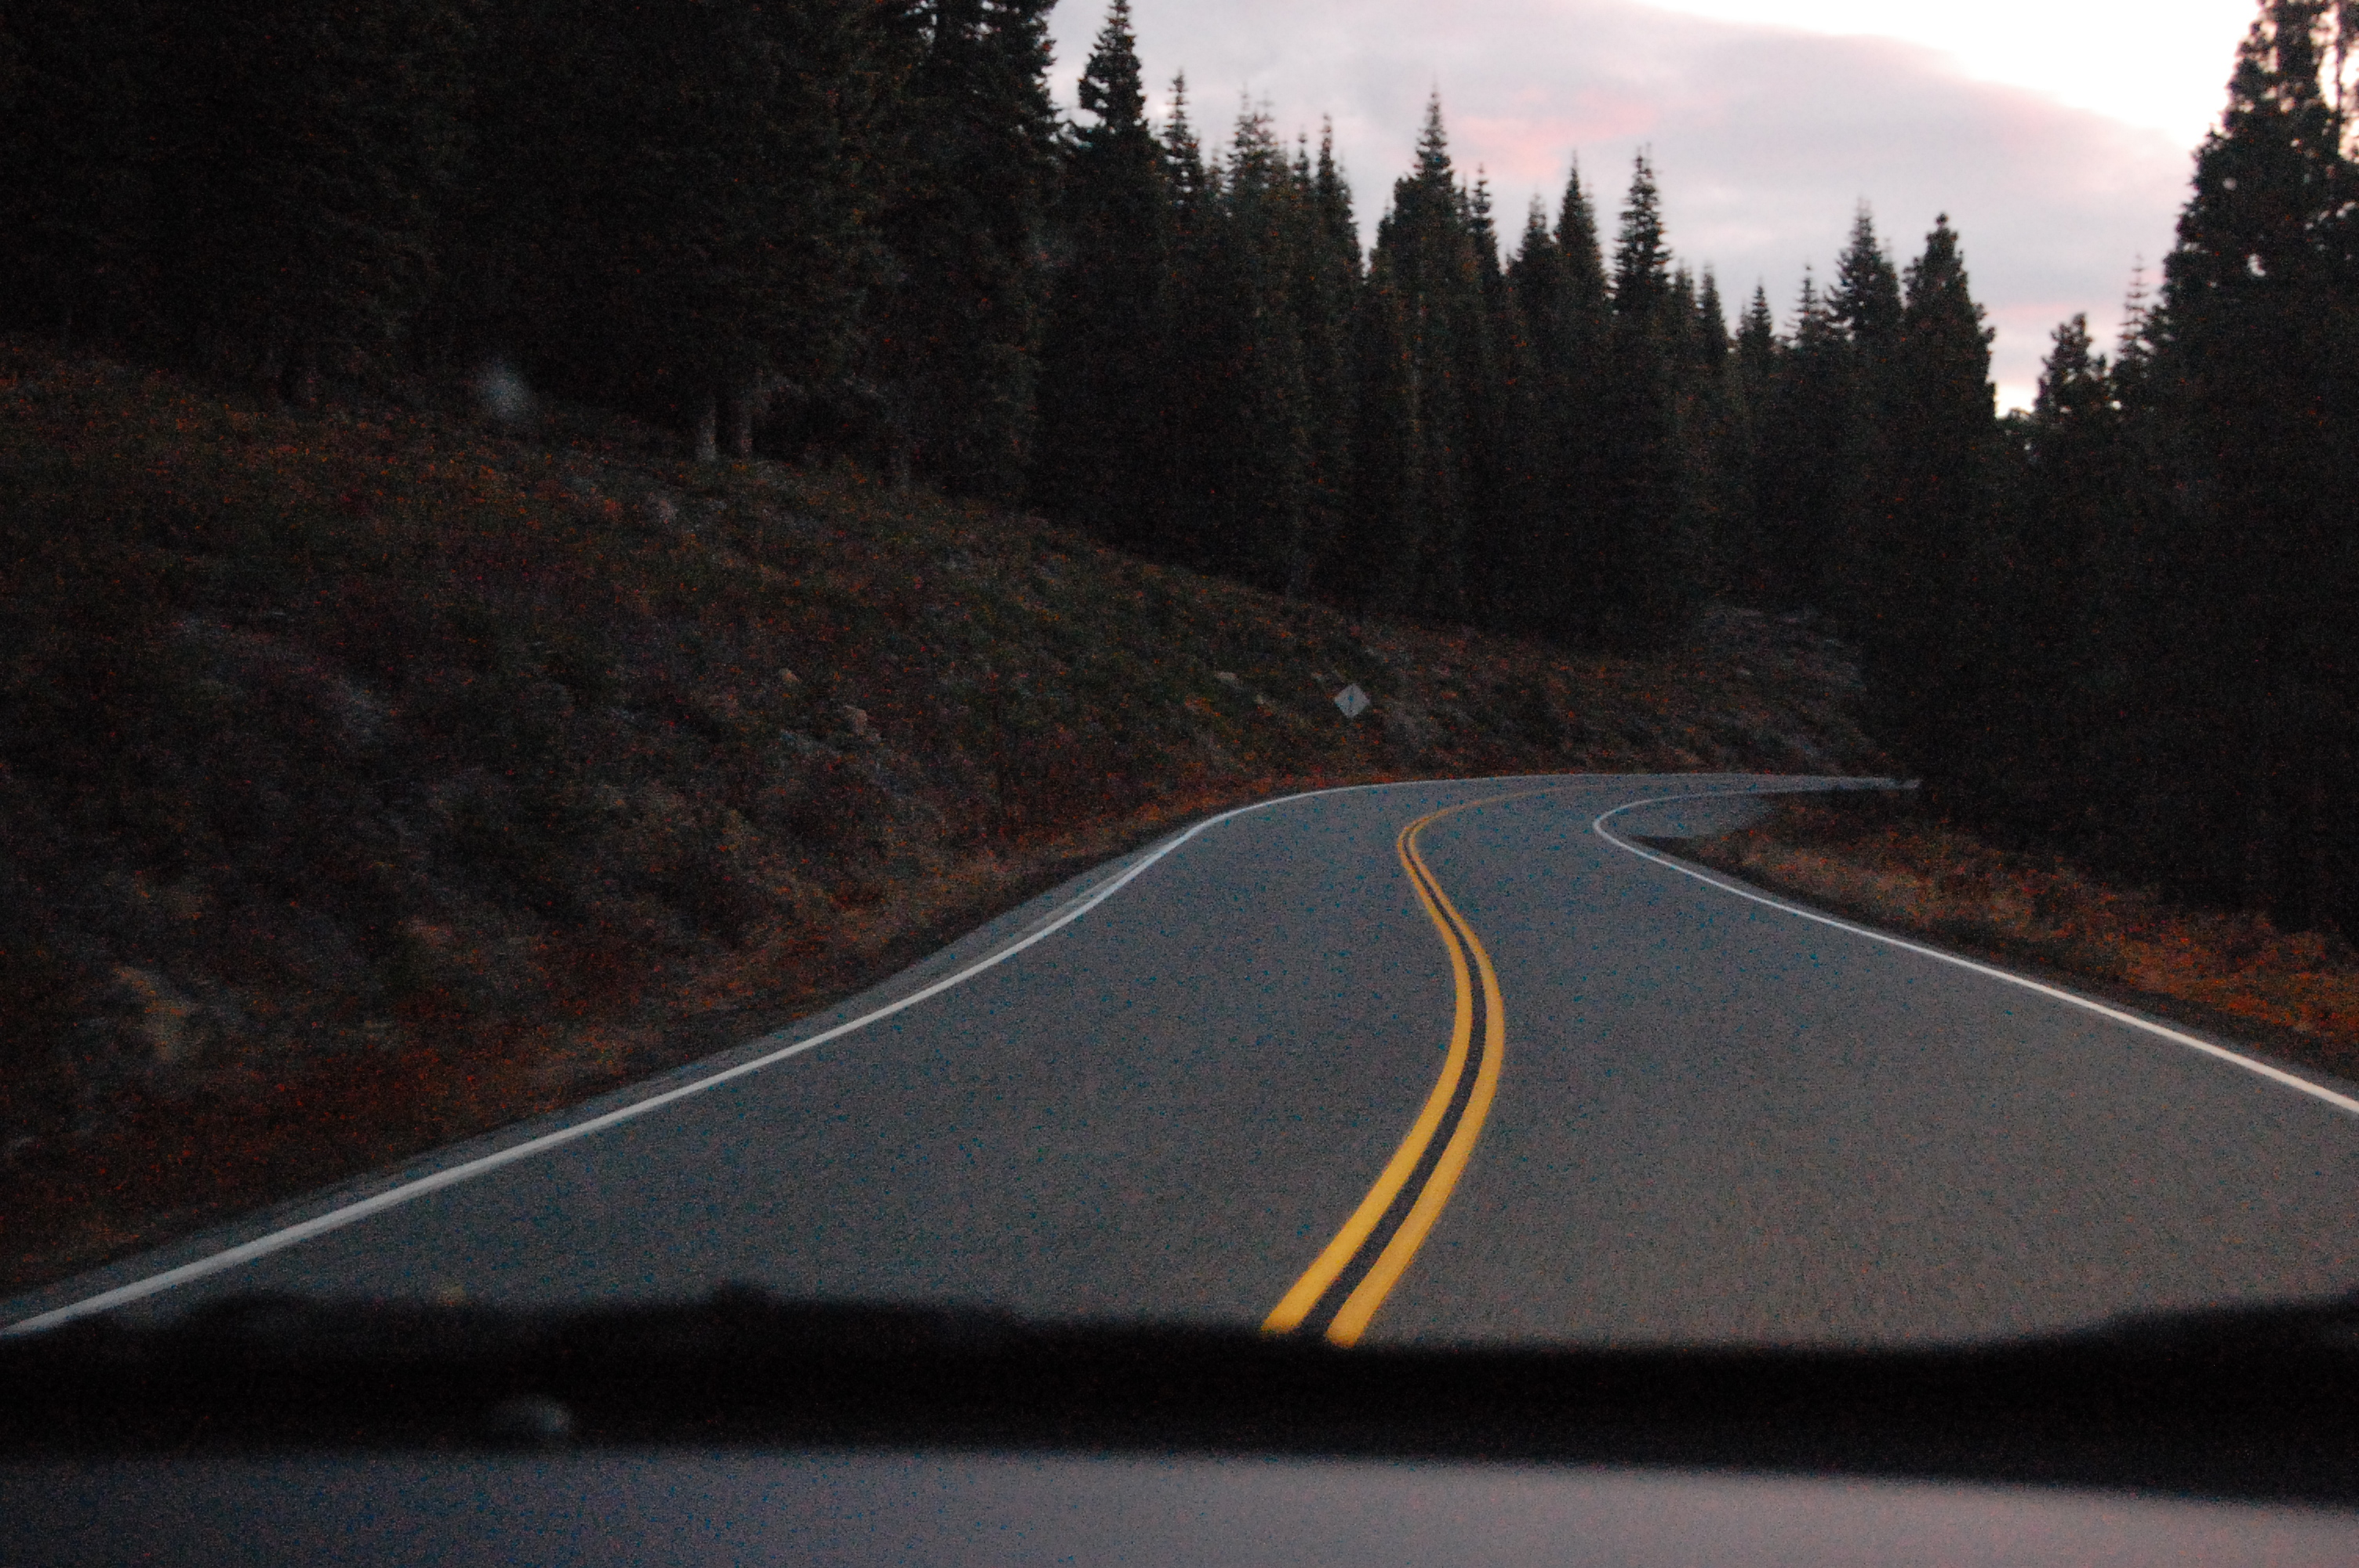 Driving on Mount Shasta